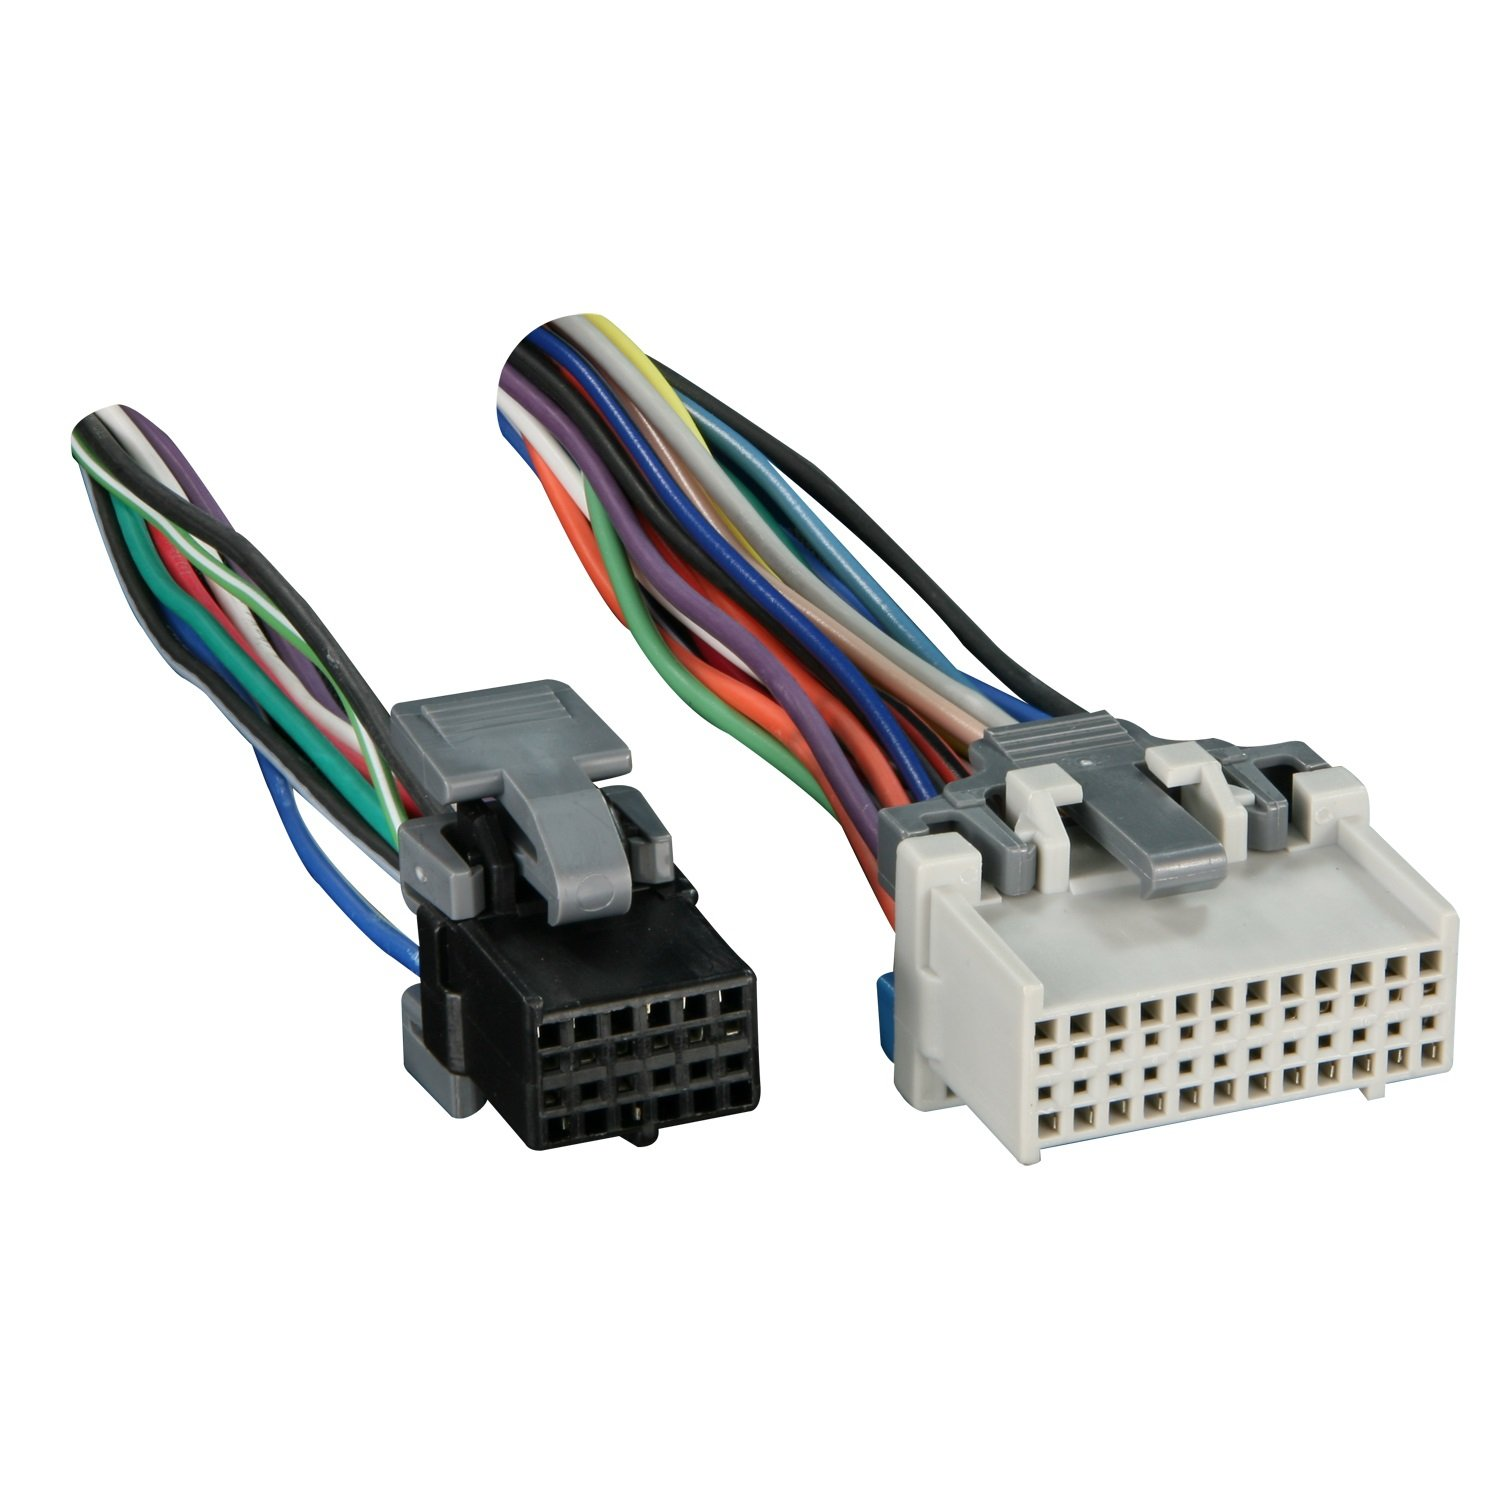 711log4bdML._SL1500_ amazon com metra turbowires 71 2003 1 wiring harness car electronics how to replace wiring harness at edmiracle.co